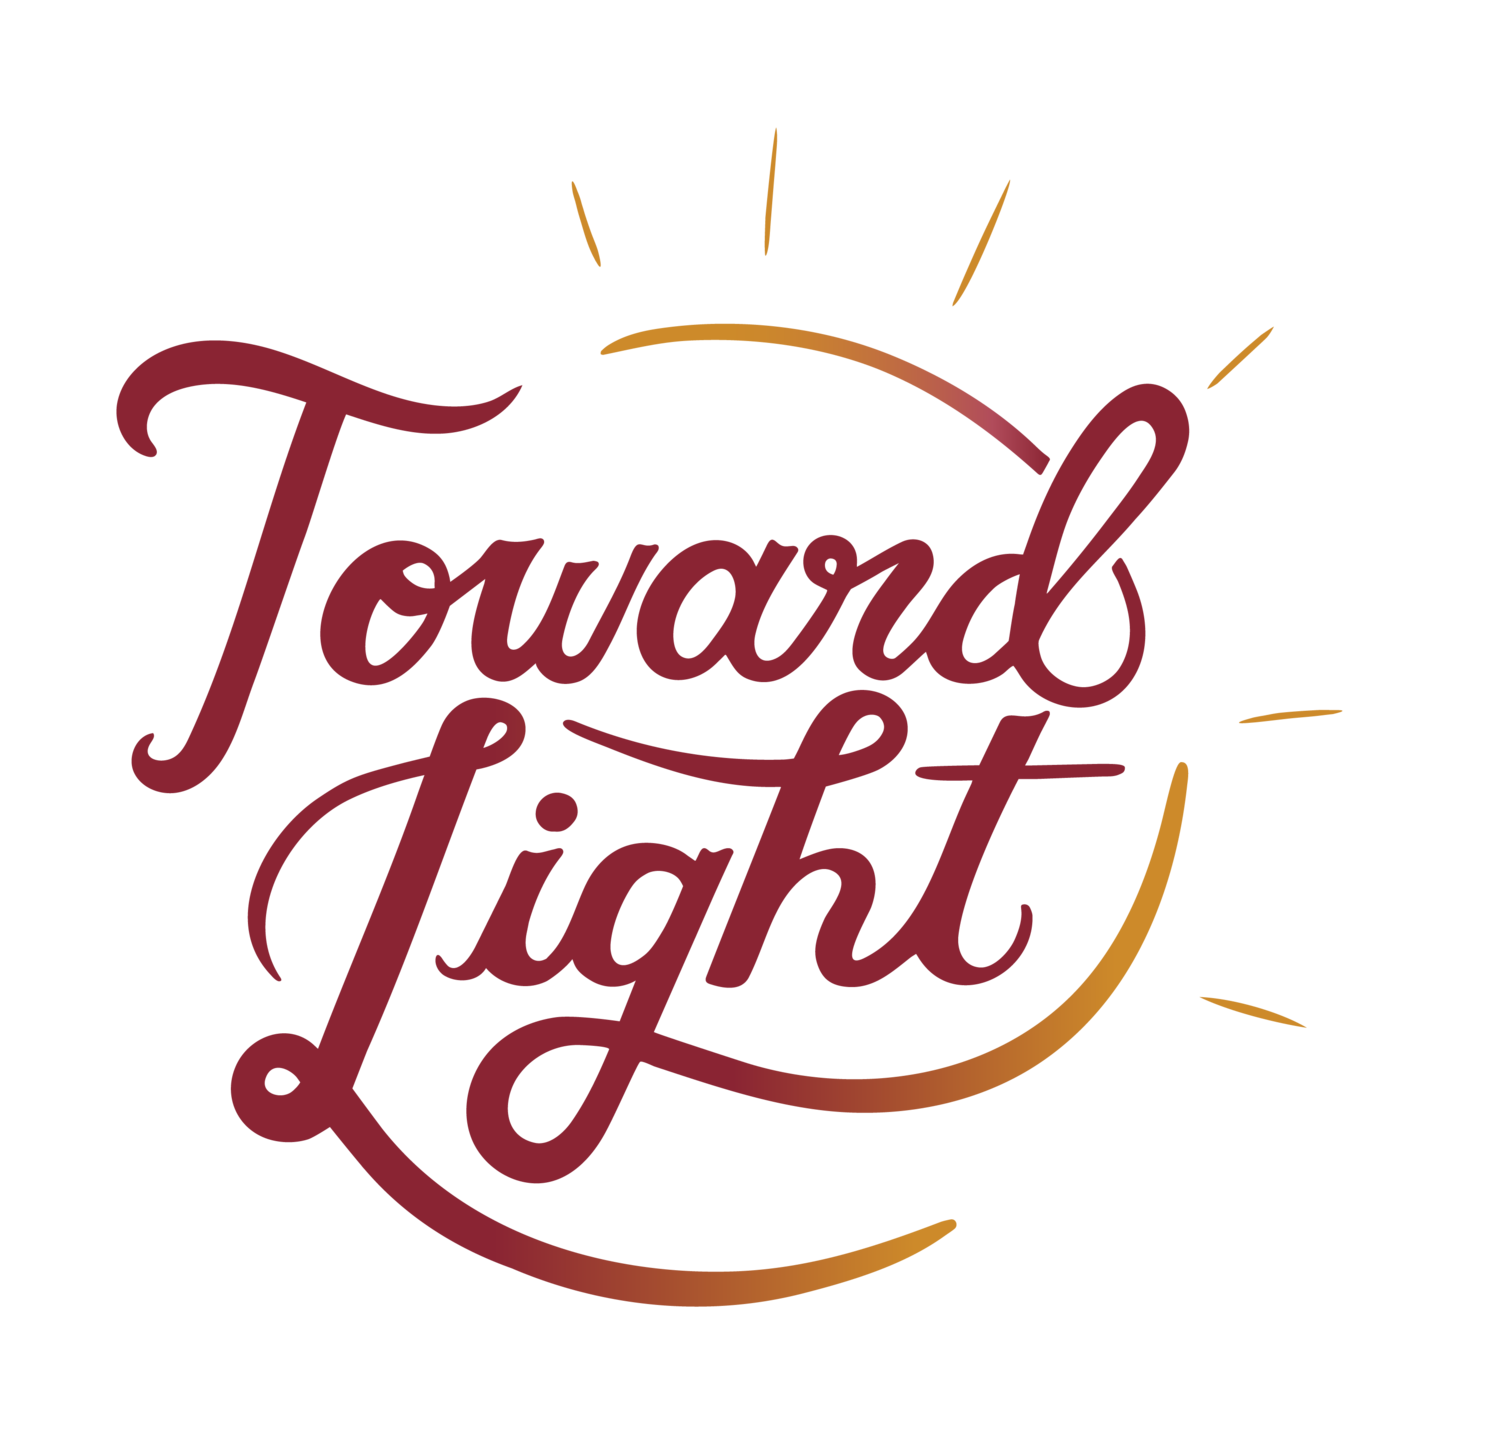 towardlight.net